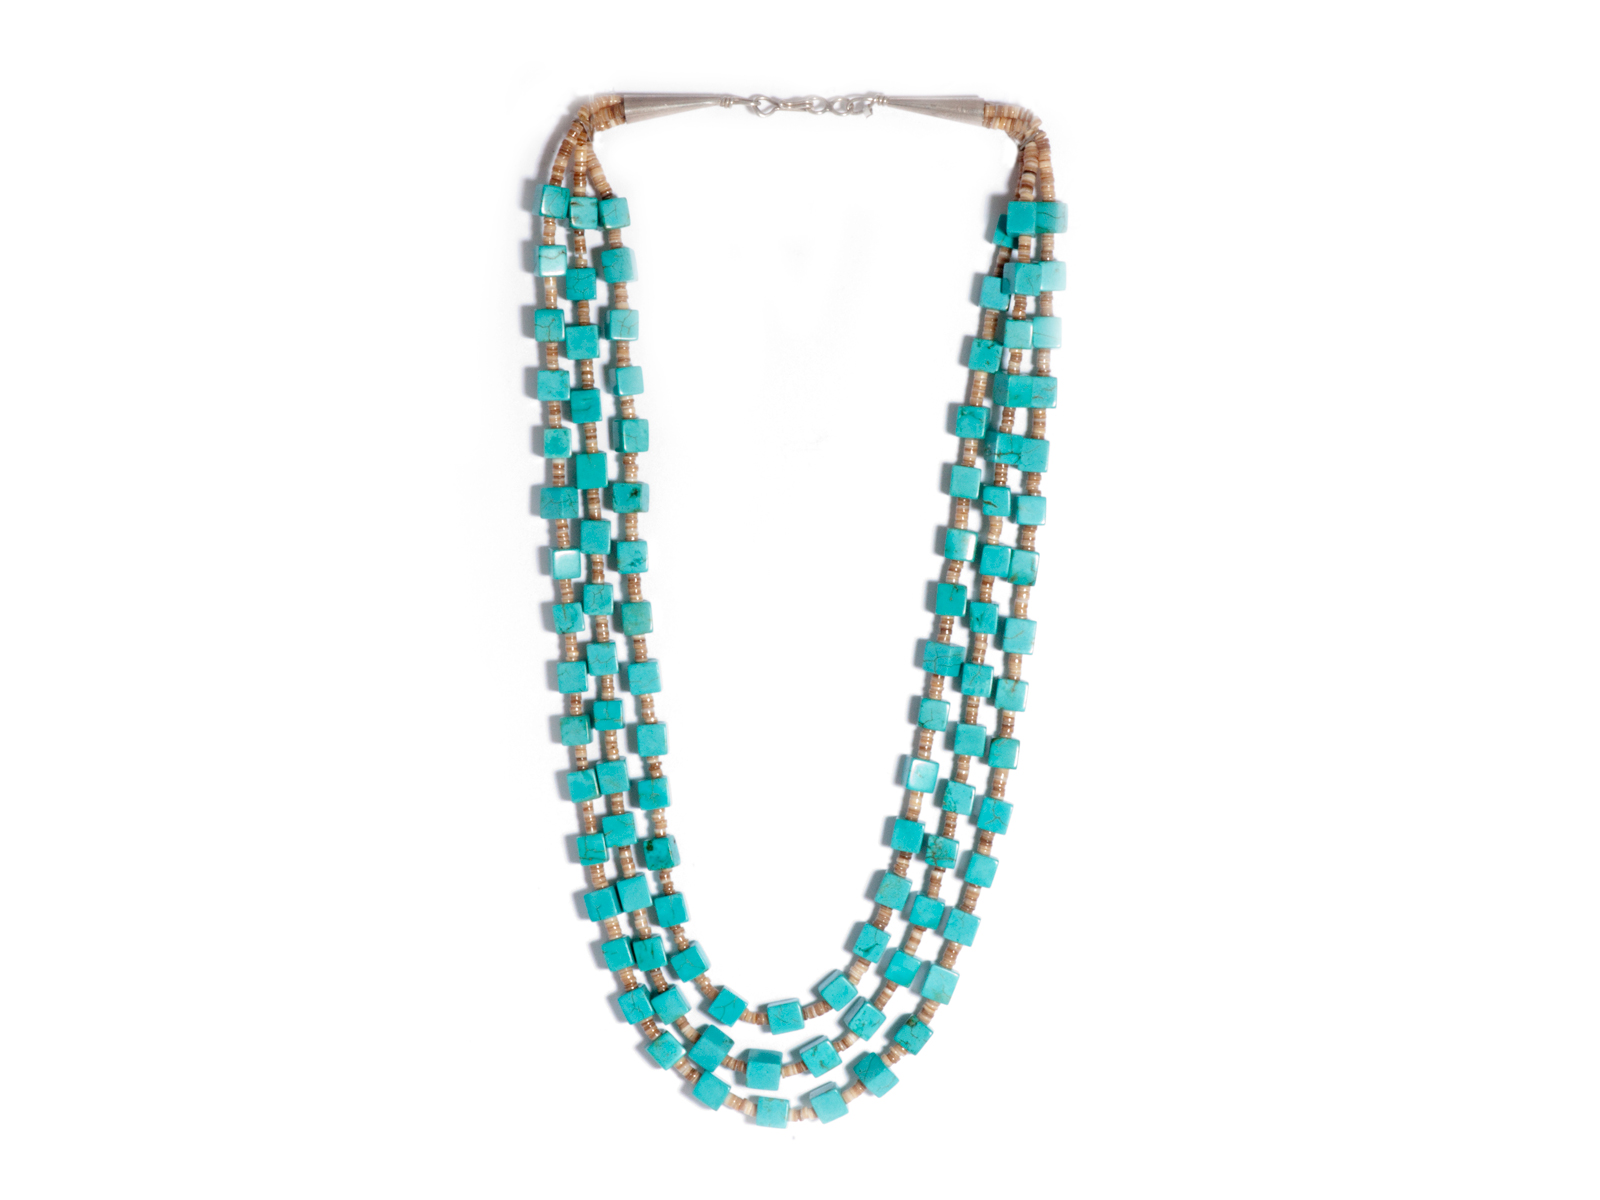 3 Strand Kingman Turquoise Cube Bead Necklace